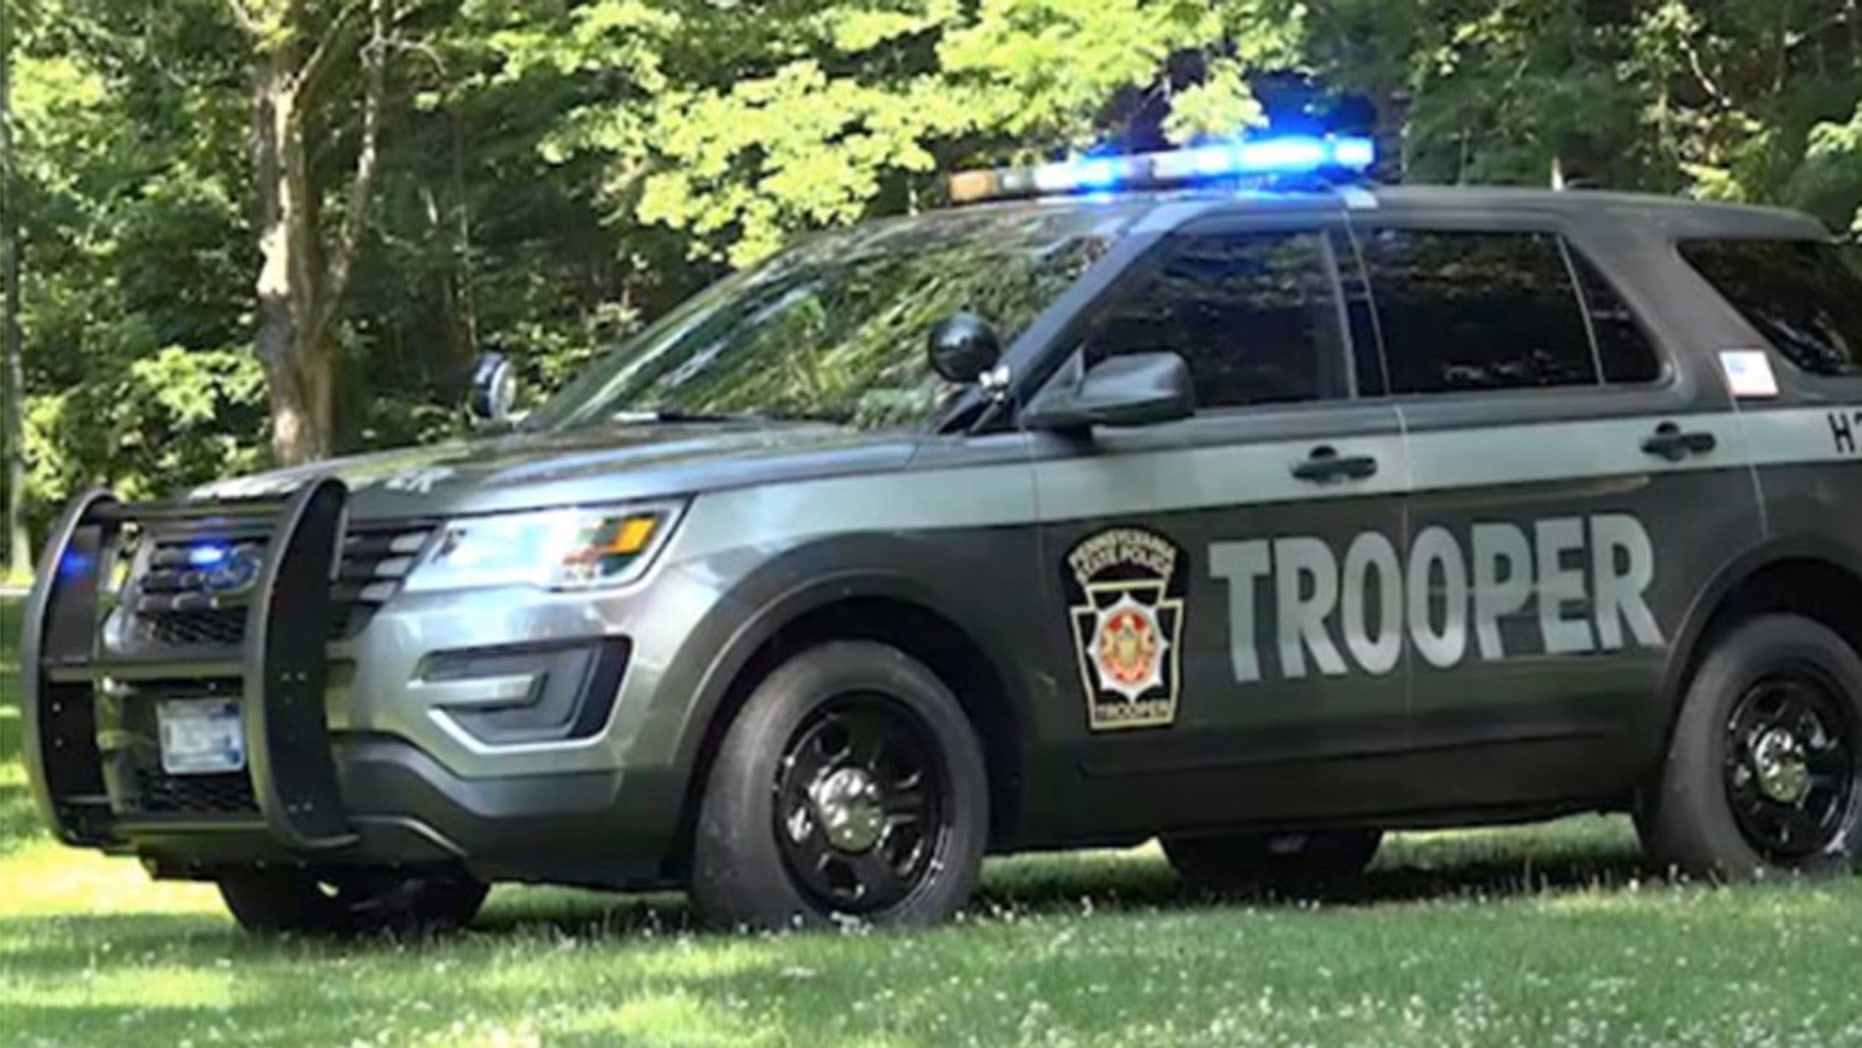 Pennsylvania State Police said a driver defecated on another man in a road rage incident.